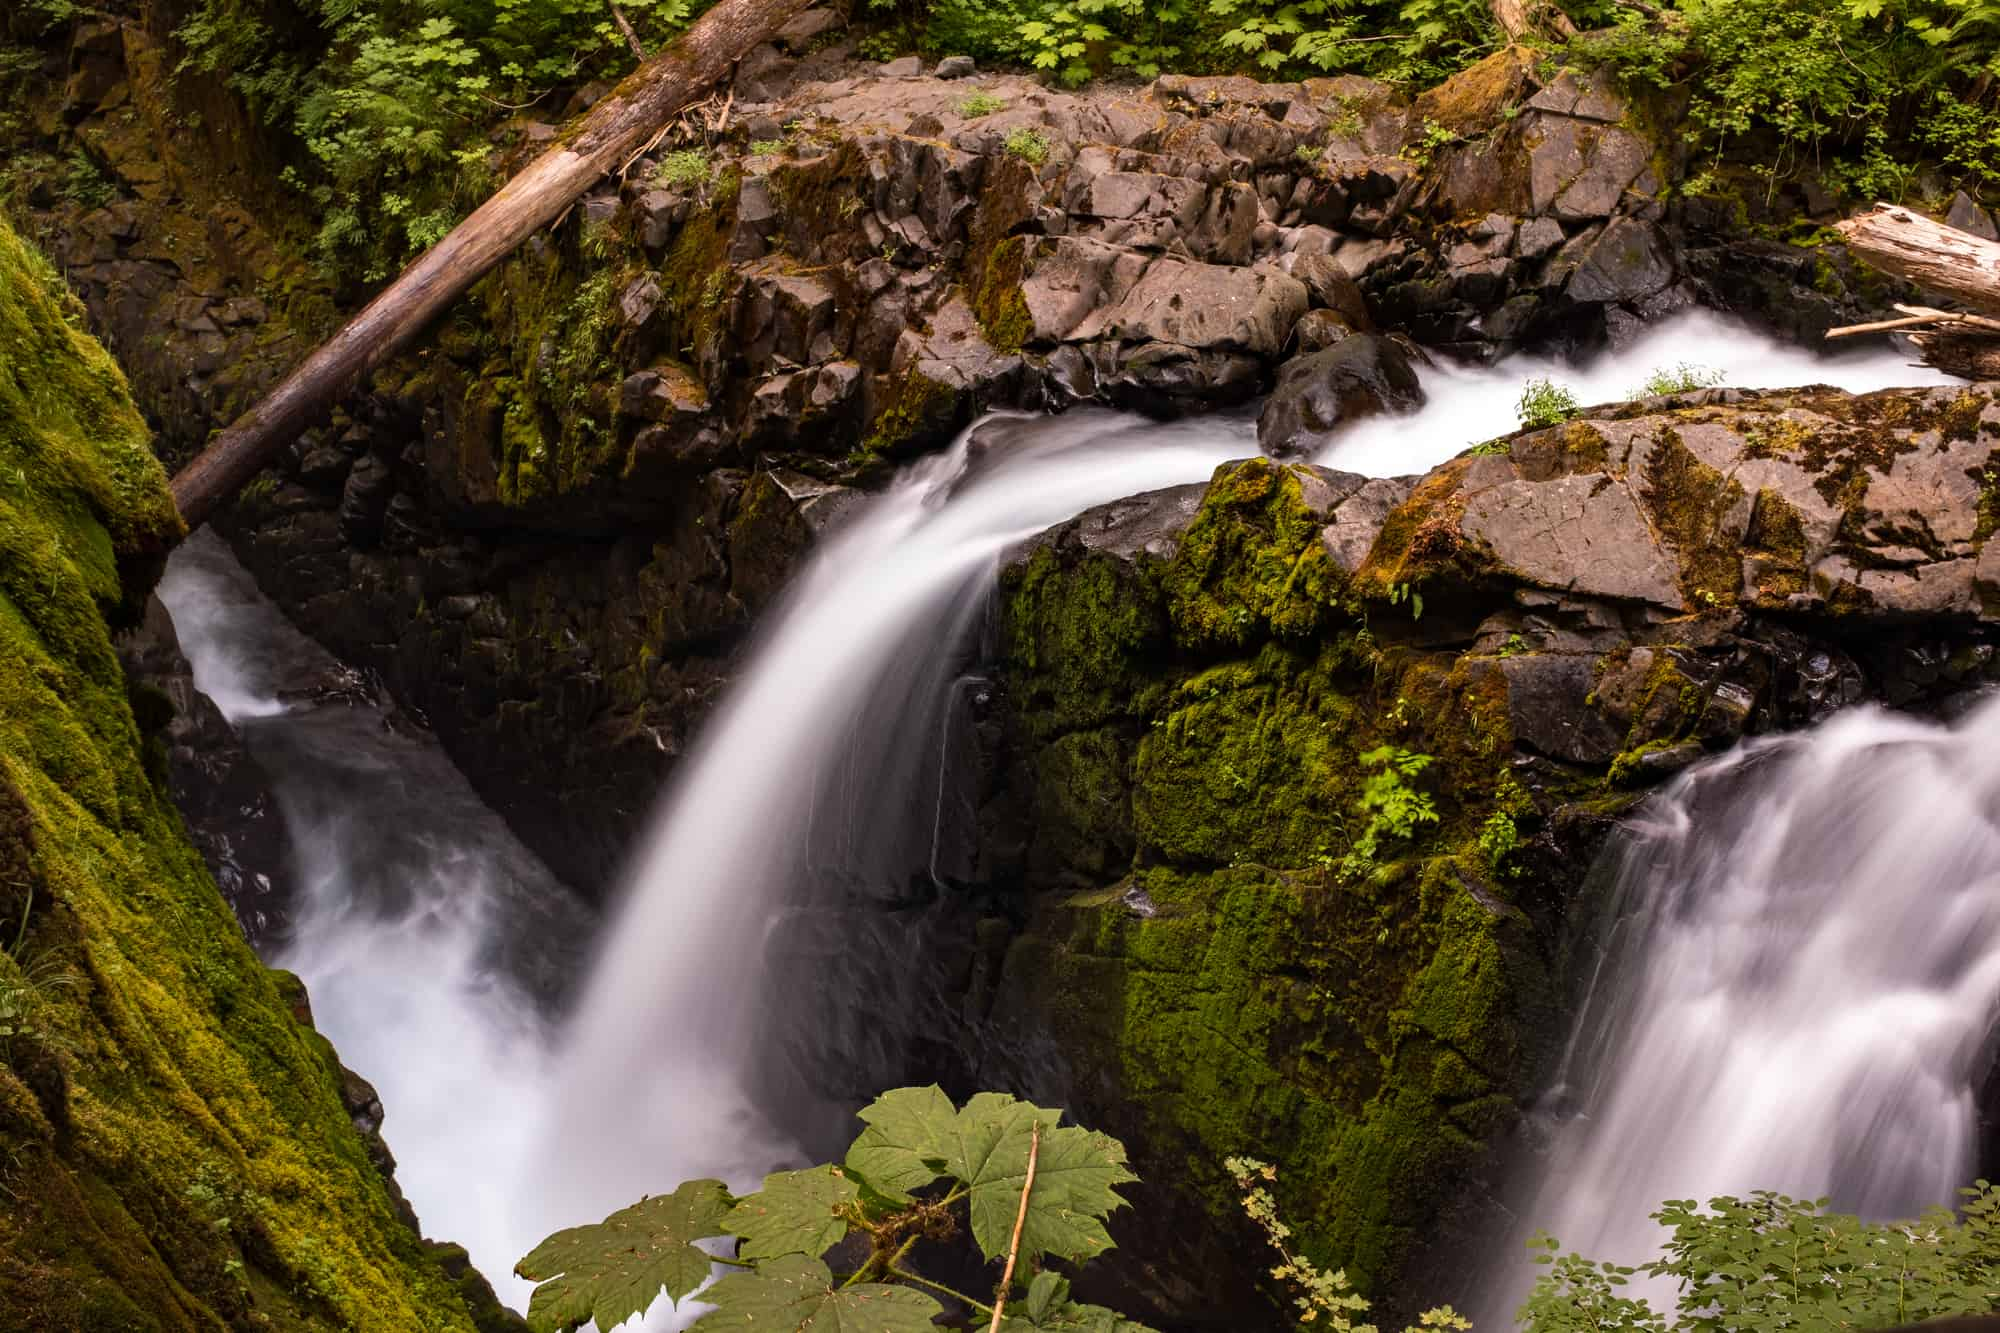 The tumbling waters at Sol Duc Falls, Olympic National Park, Washington, USA, long exposure create a blurred motion to the falls, nobody in the image